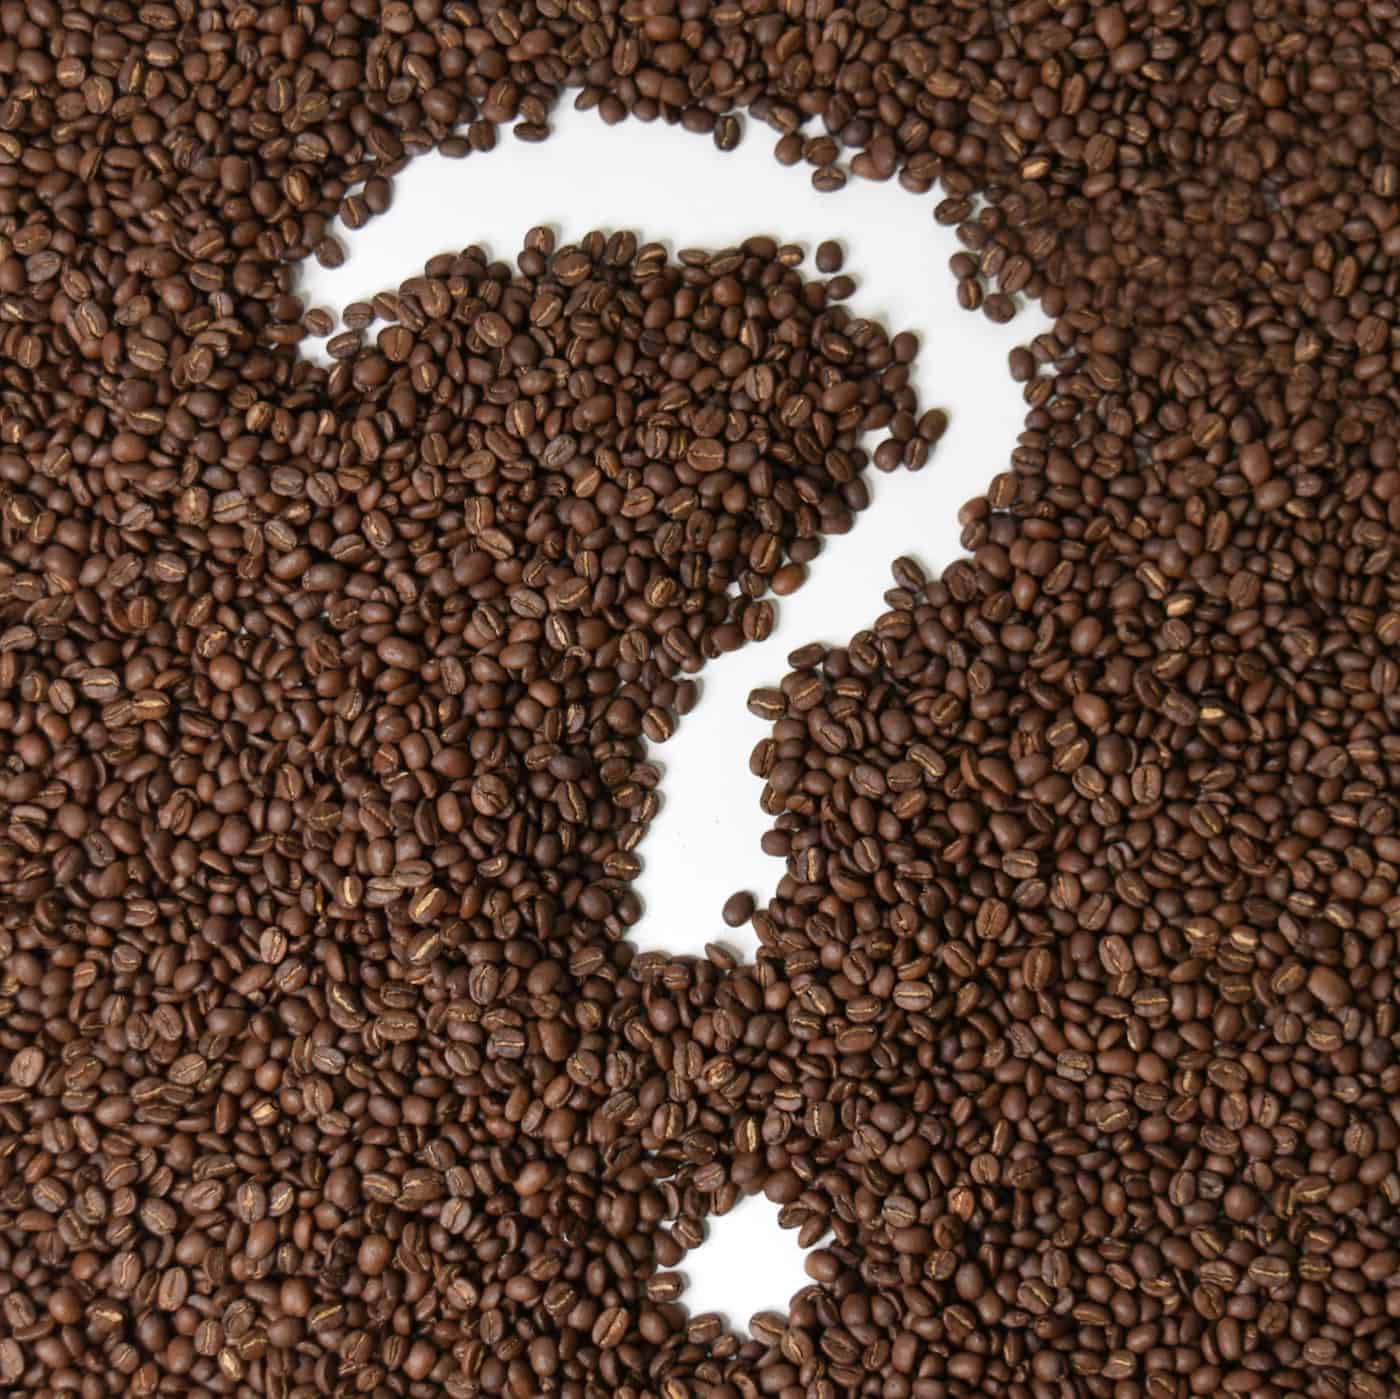 Question mark inside of coffee beans